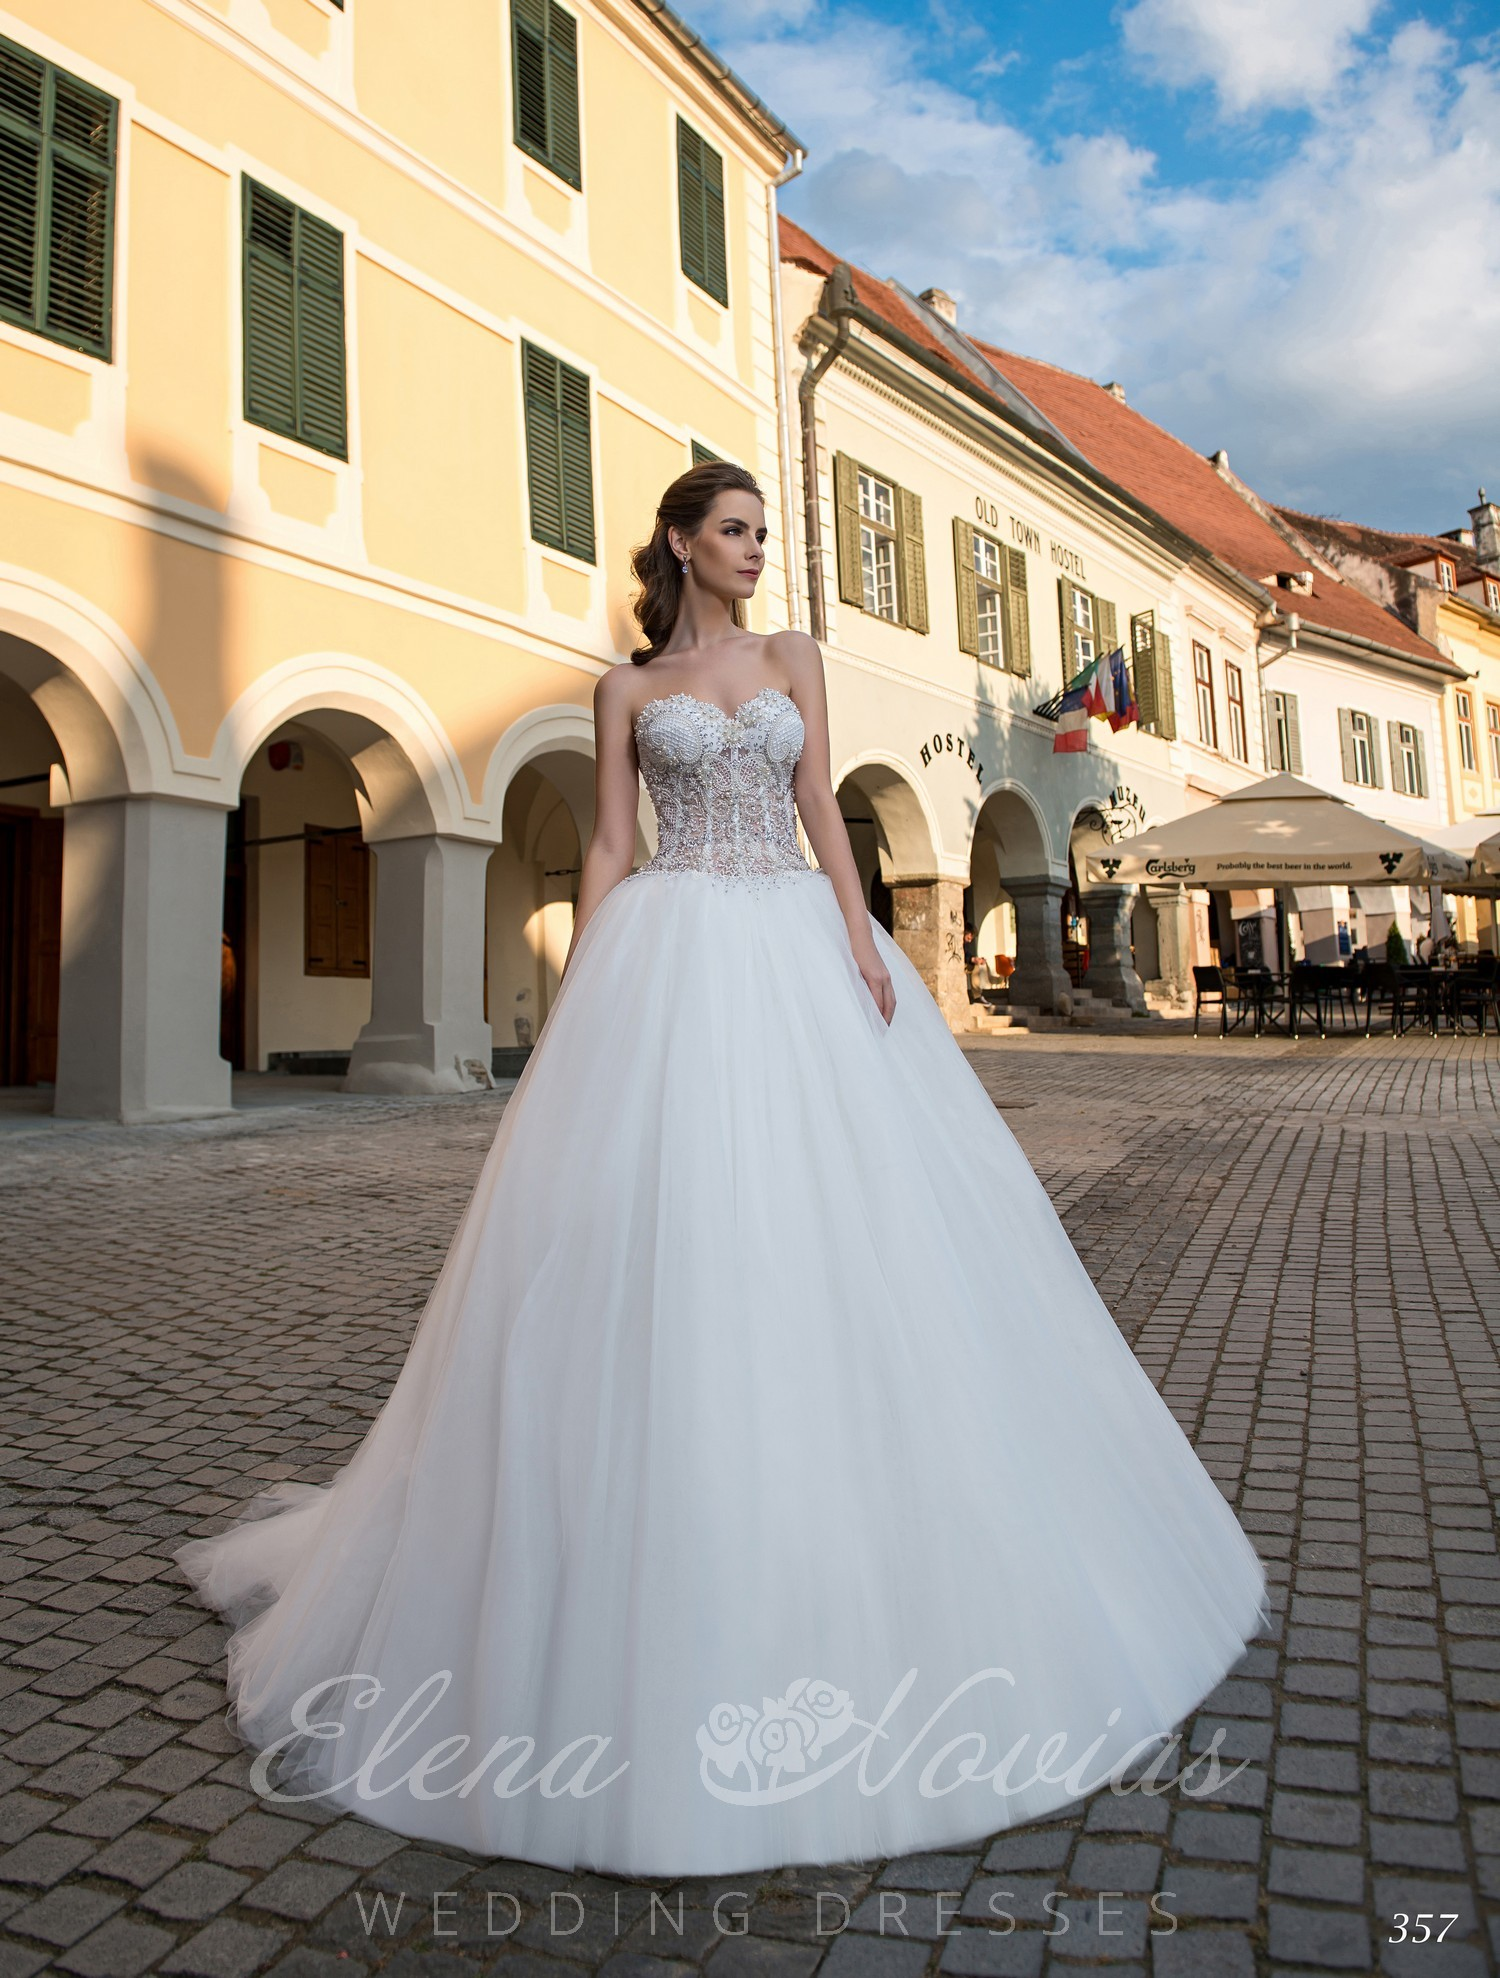 Wedding dress wholesale 357